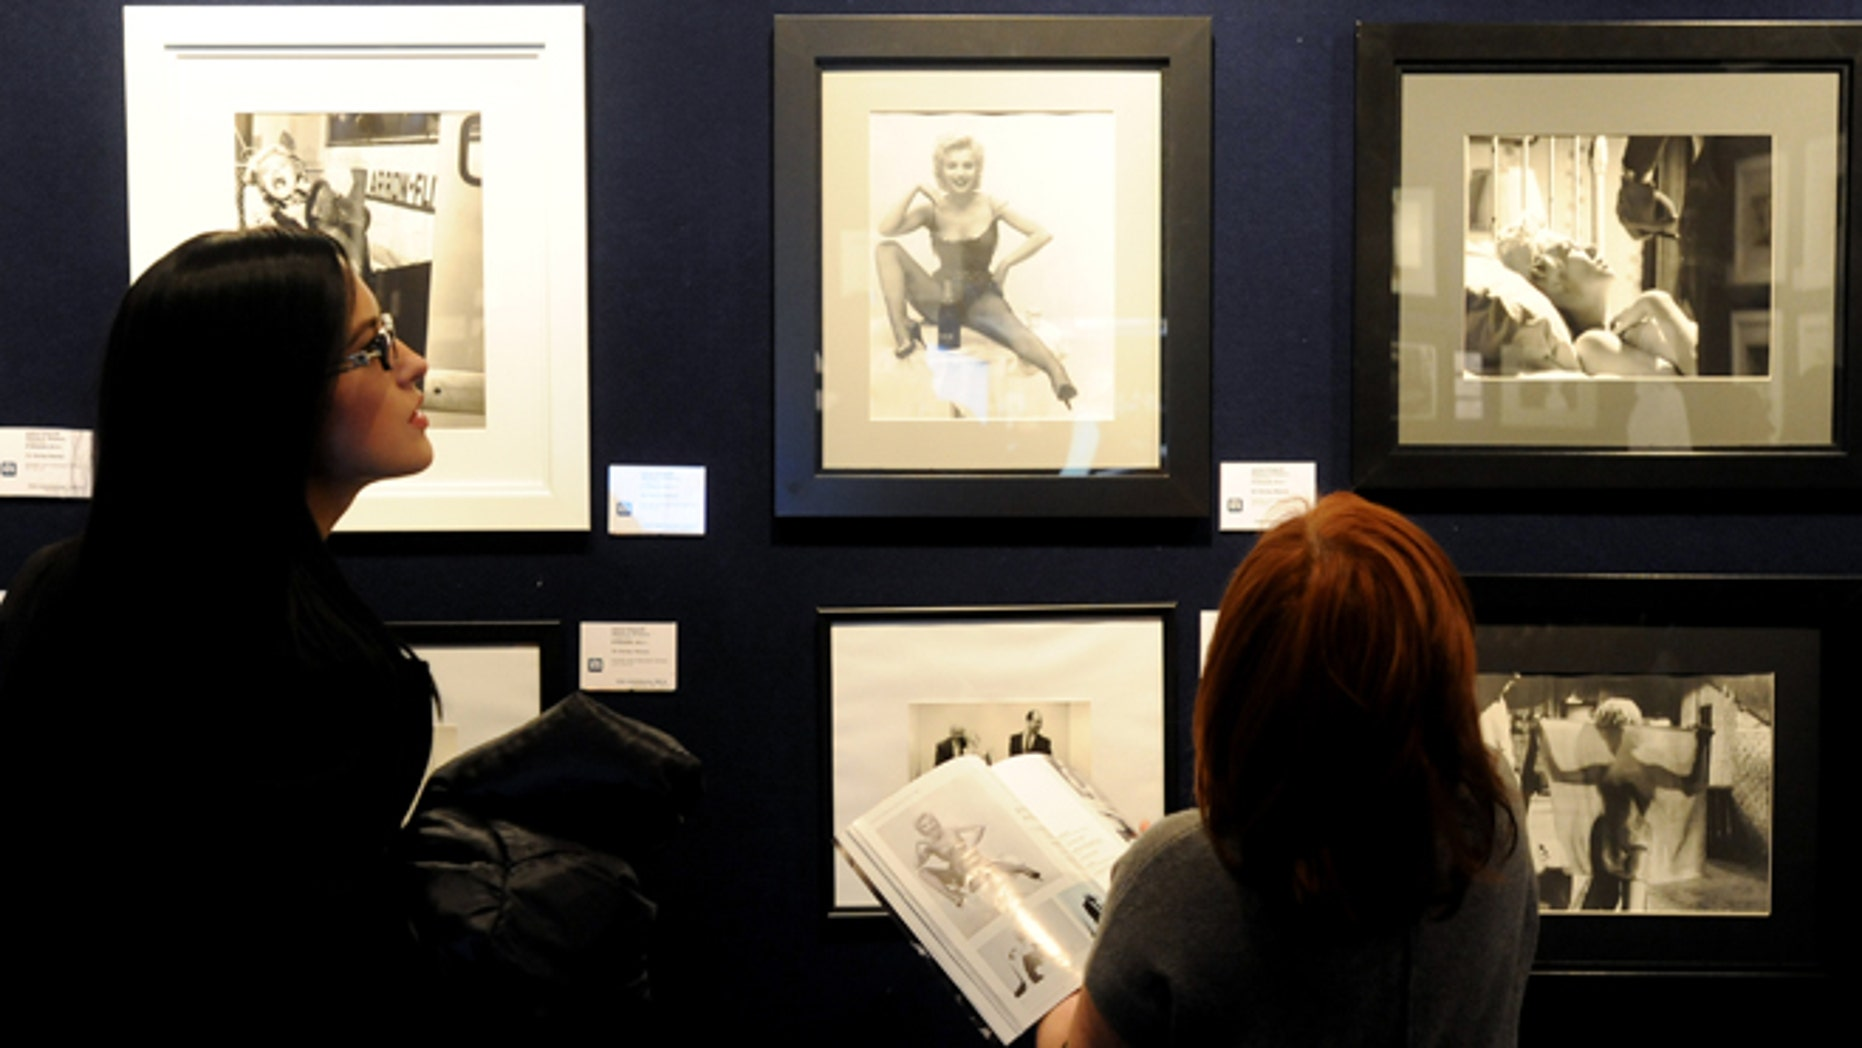 Nov. 8, 2012: Potential bidders look at Marylin Monroe photos prior to an auction of pictures by the late celebrity photographer Milton H. Greene, in Warsaw, Poland.